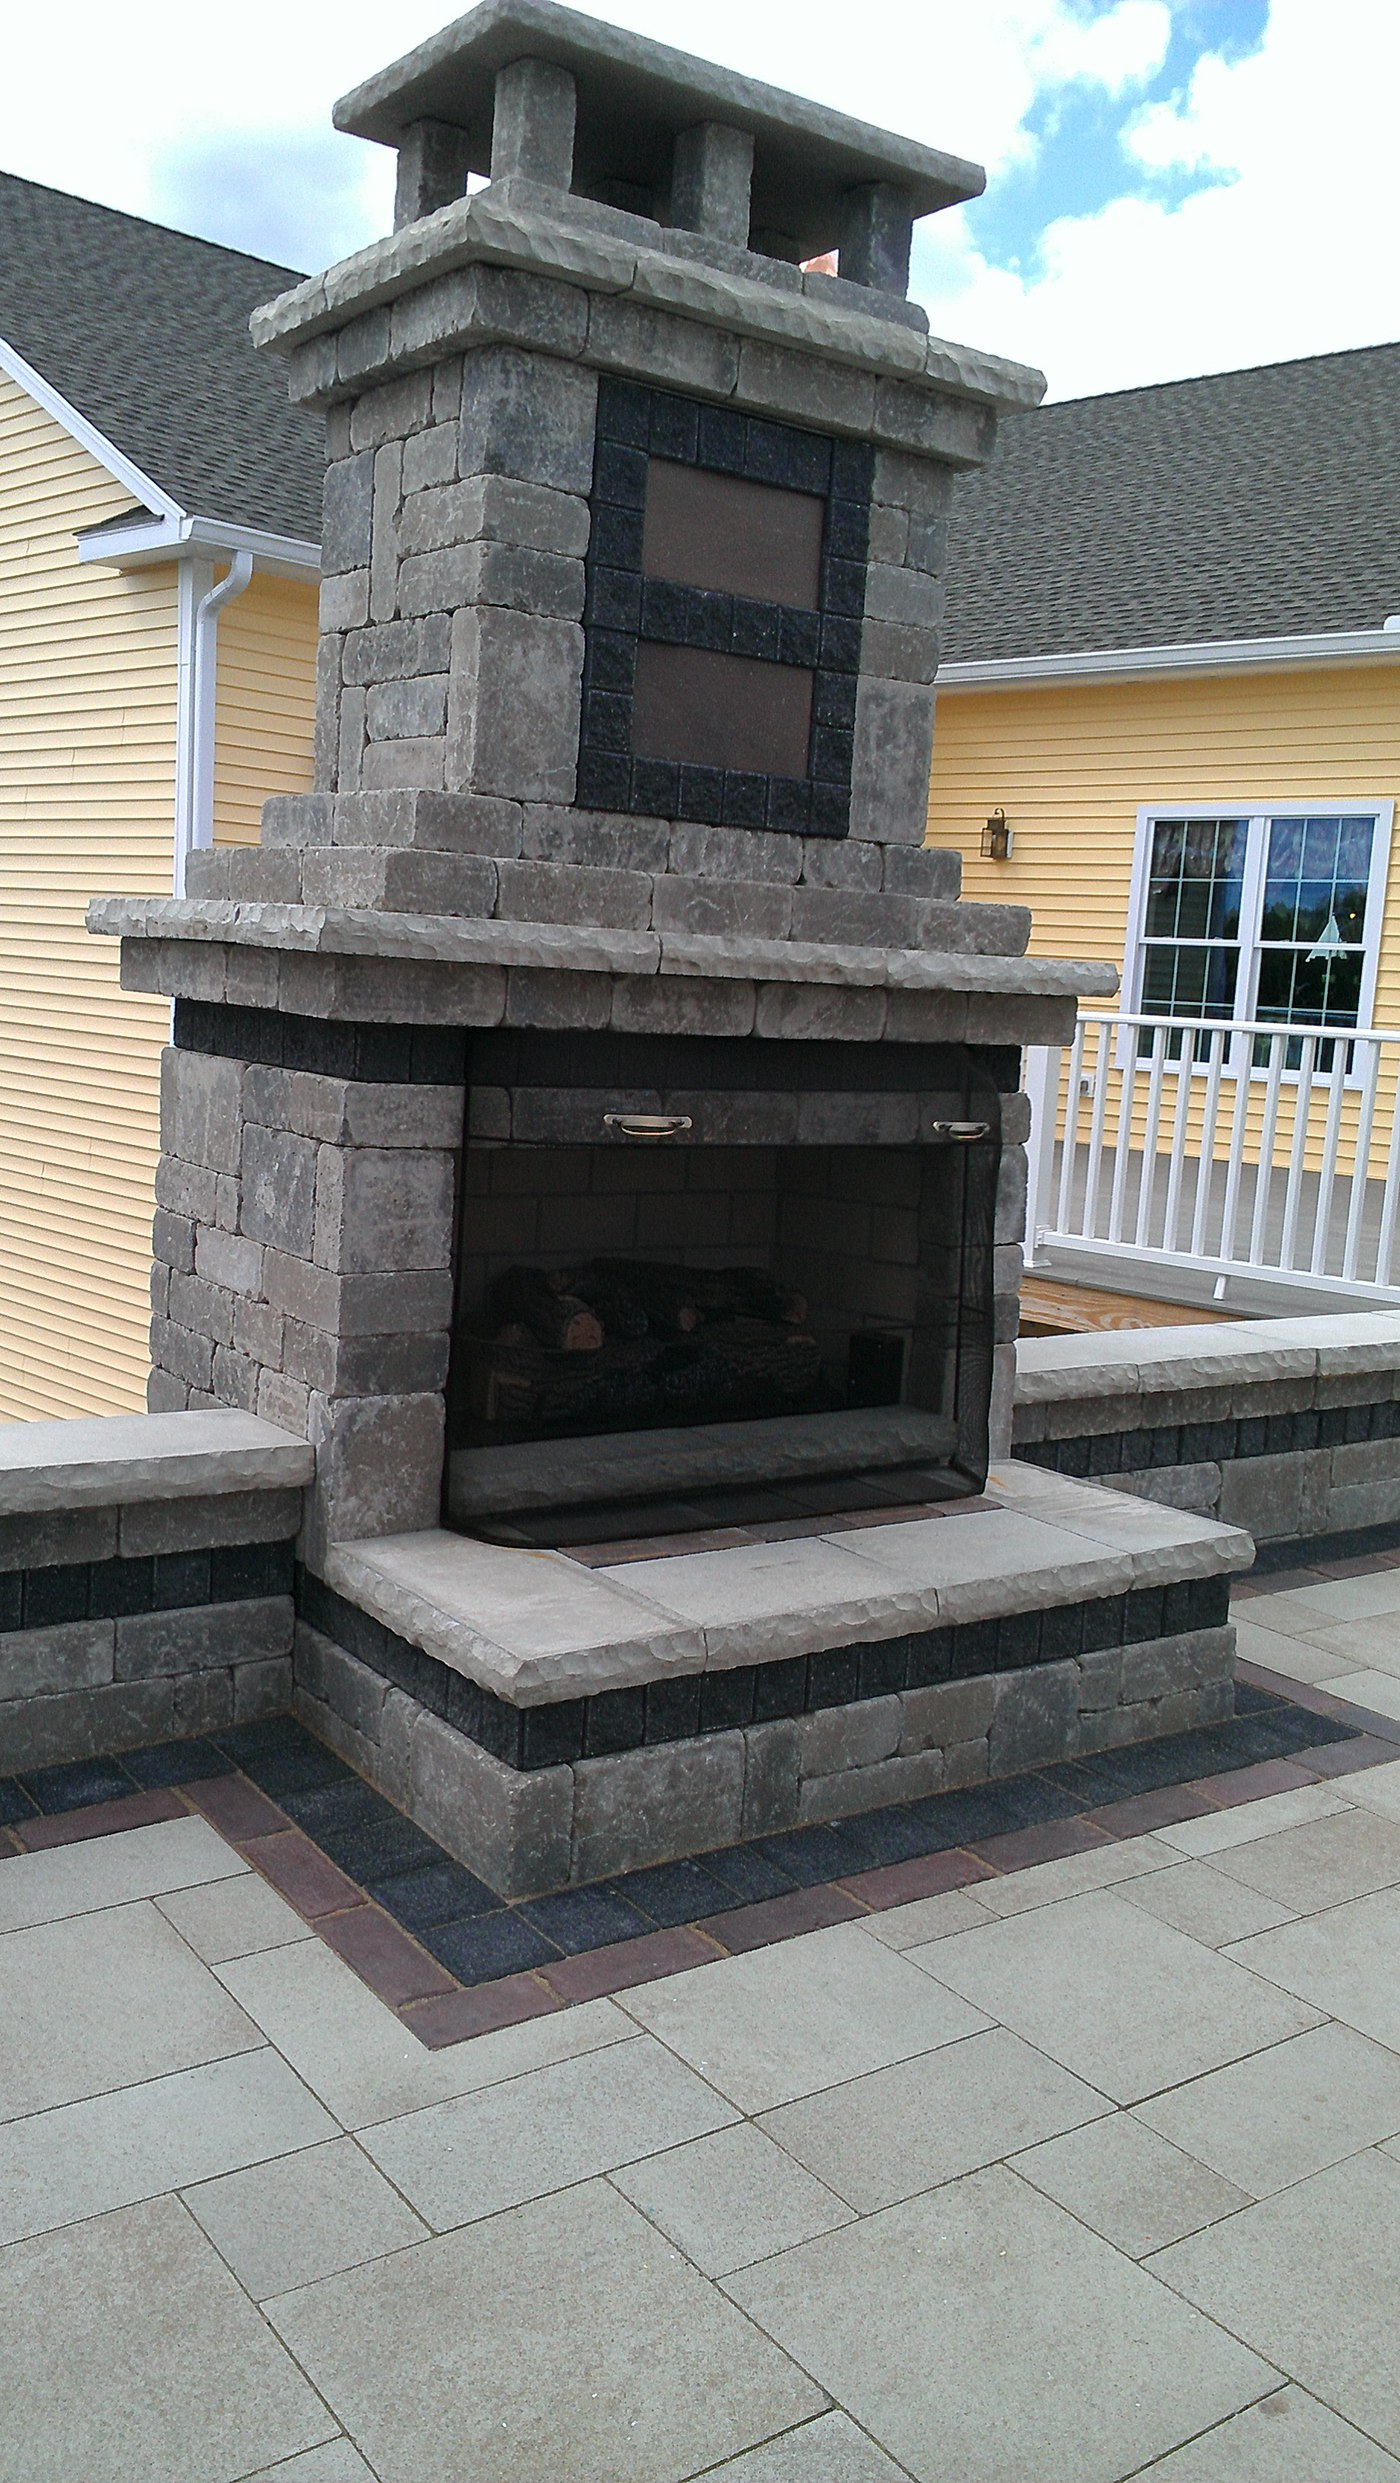 An outdoor gas fire place built by Bahler Brothers sits flanked by Sitting walls on a paver patio in Ellington CT